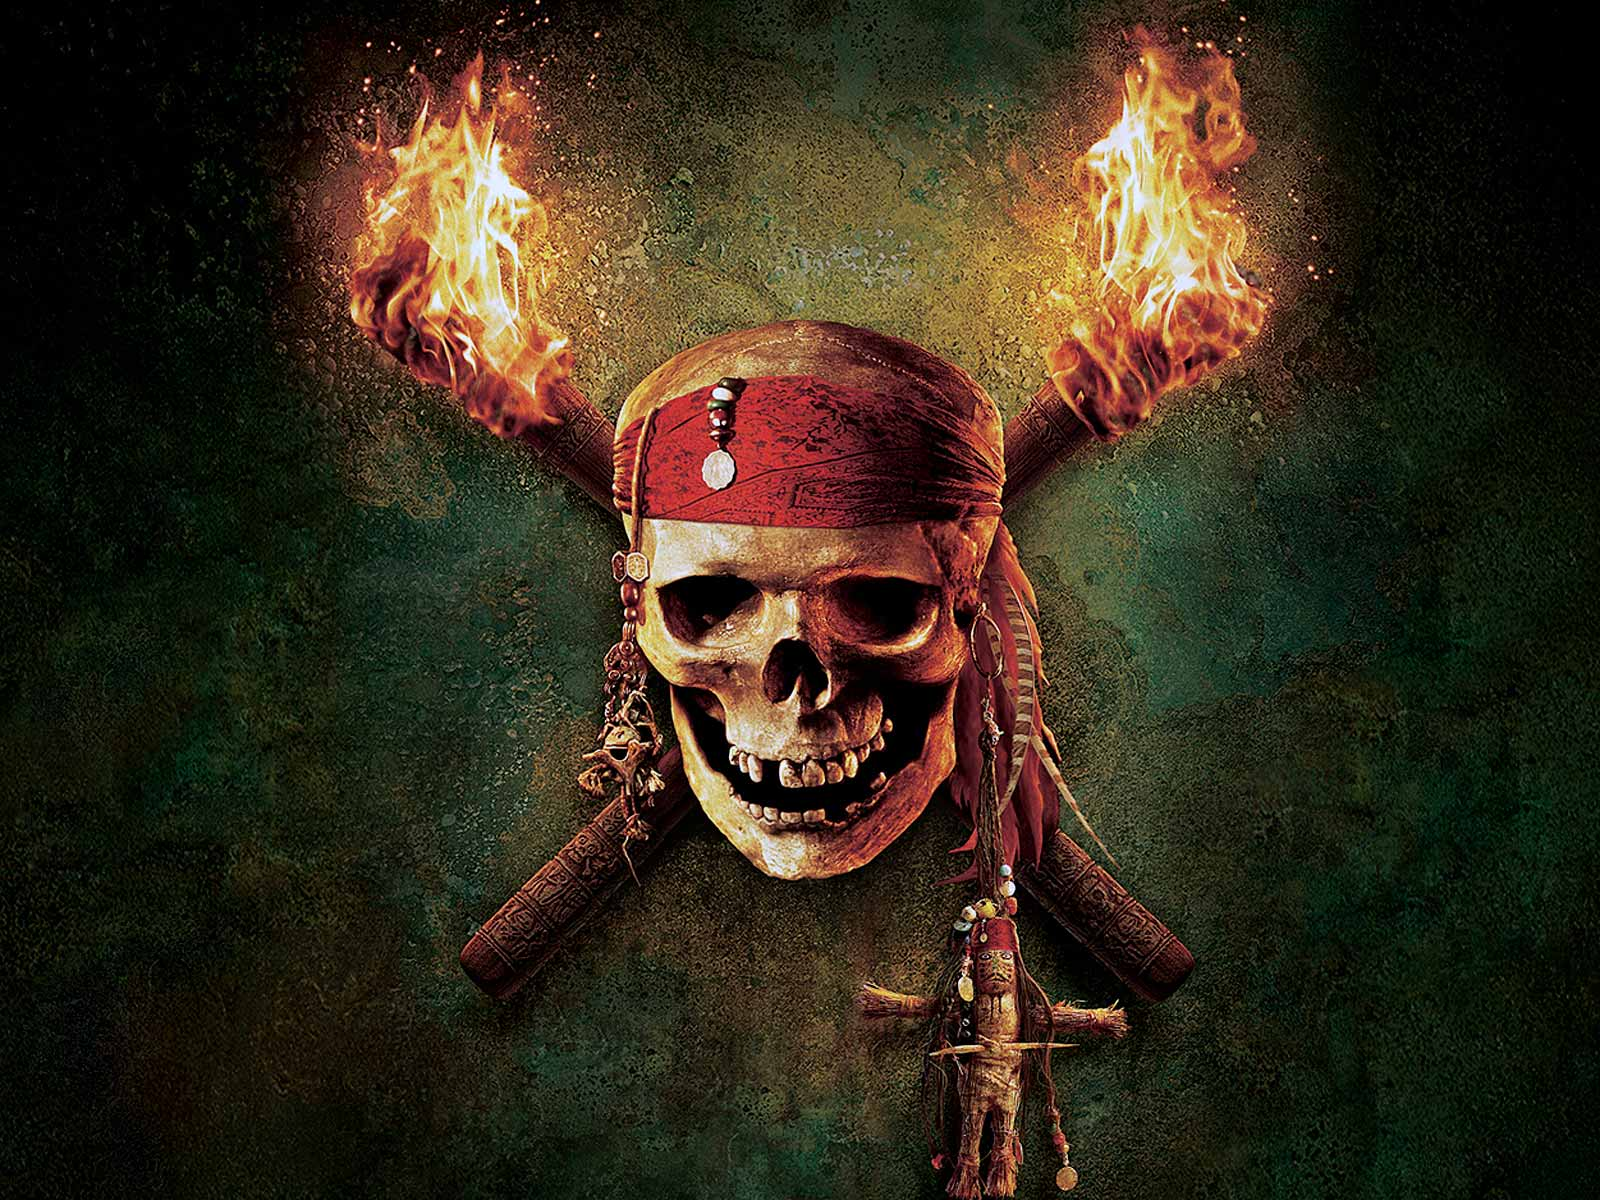 Pirates Of The Caribbean Wallpapers Wallpaper Cave